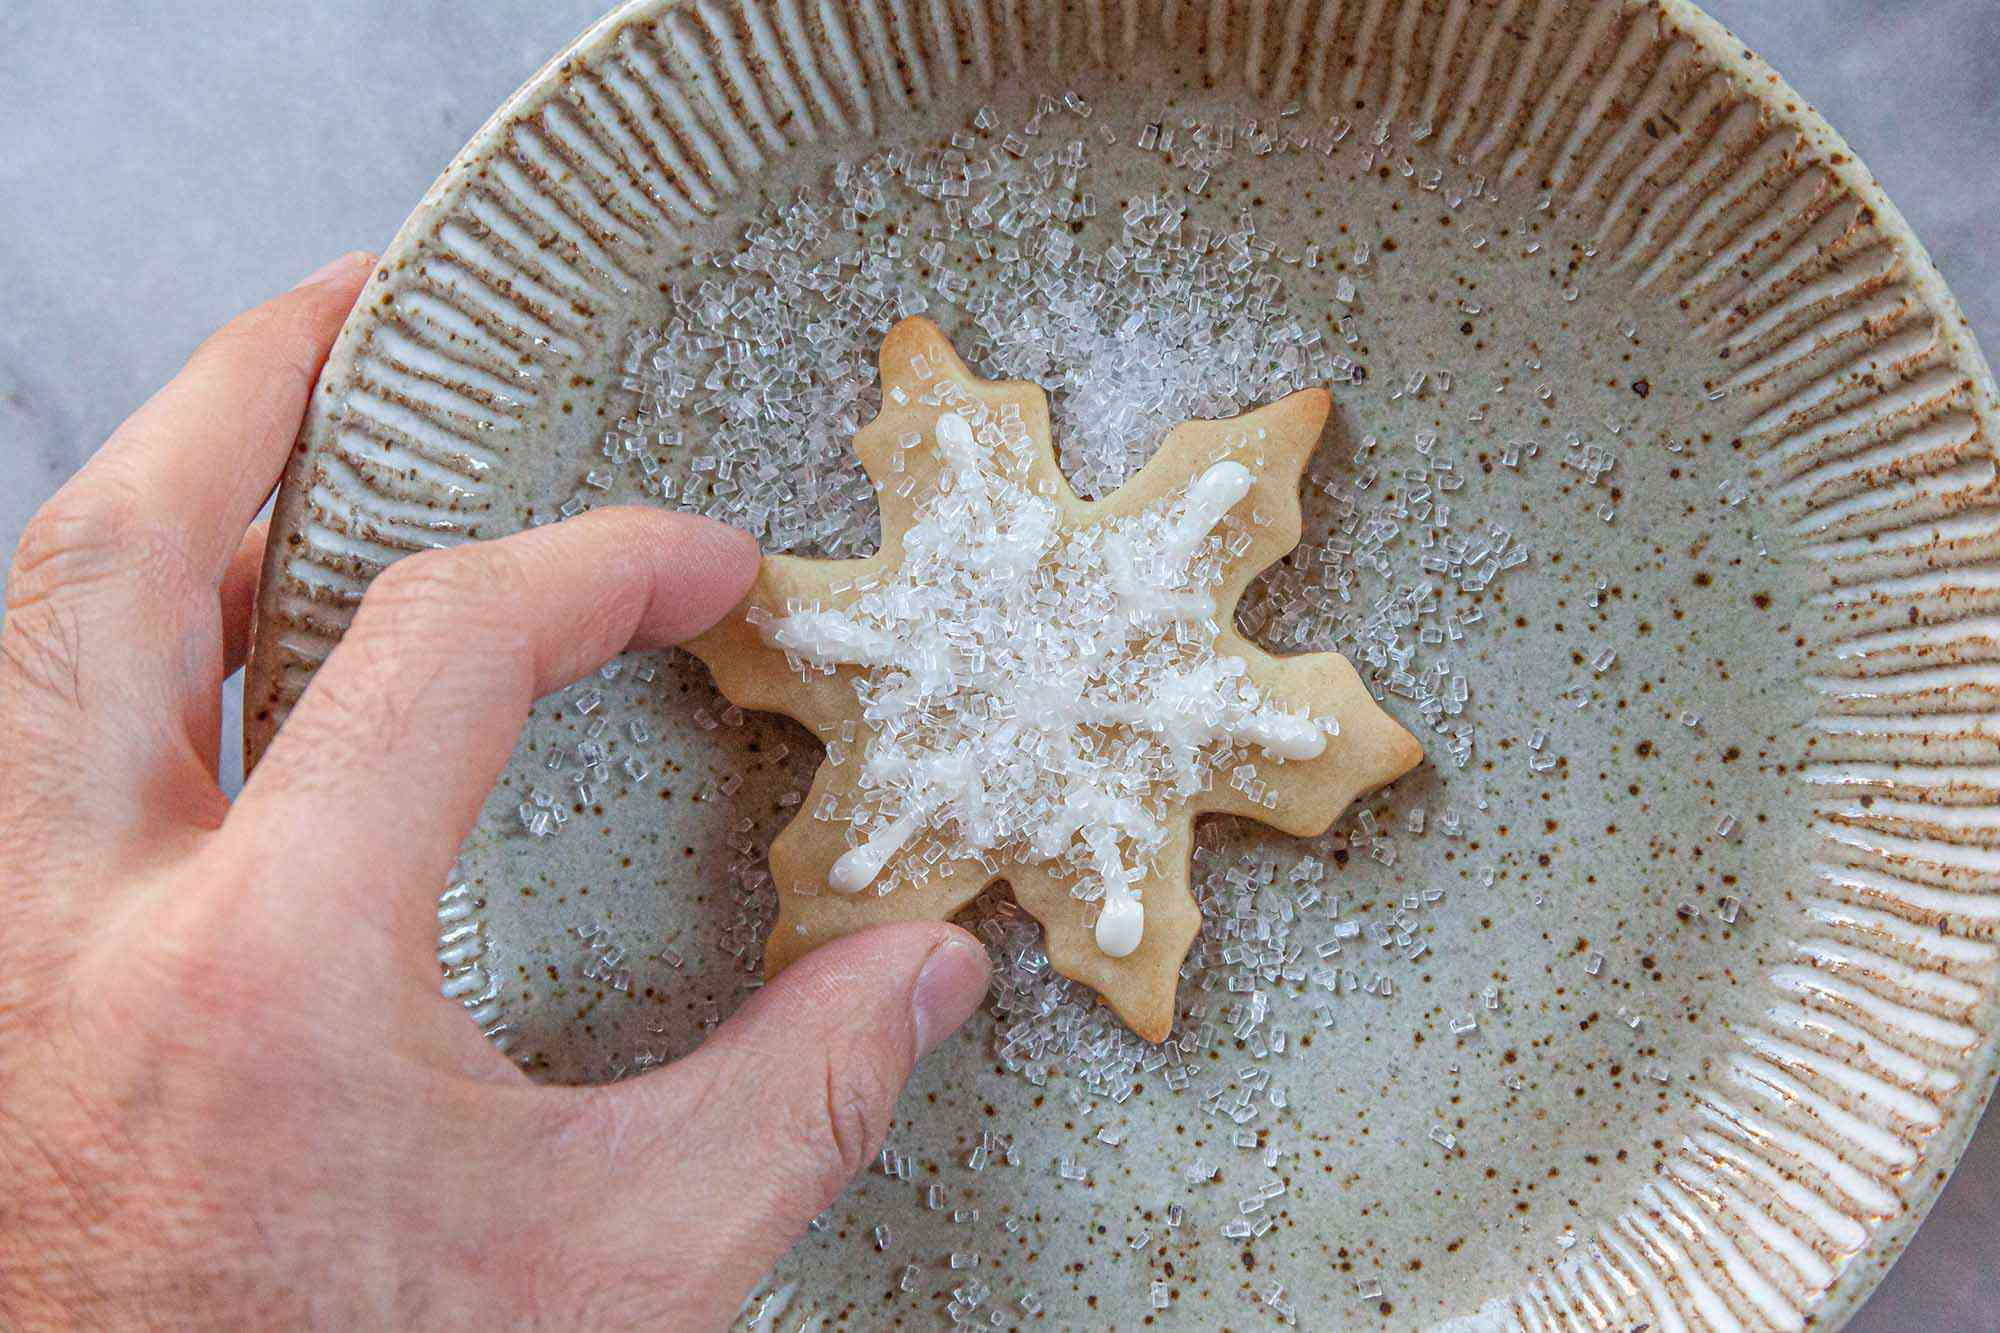 Sparkling sugar added to a snowflake sugar cookie decorated with Royal icing for sugar cookies.